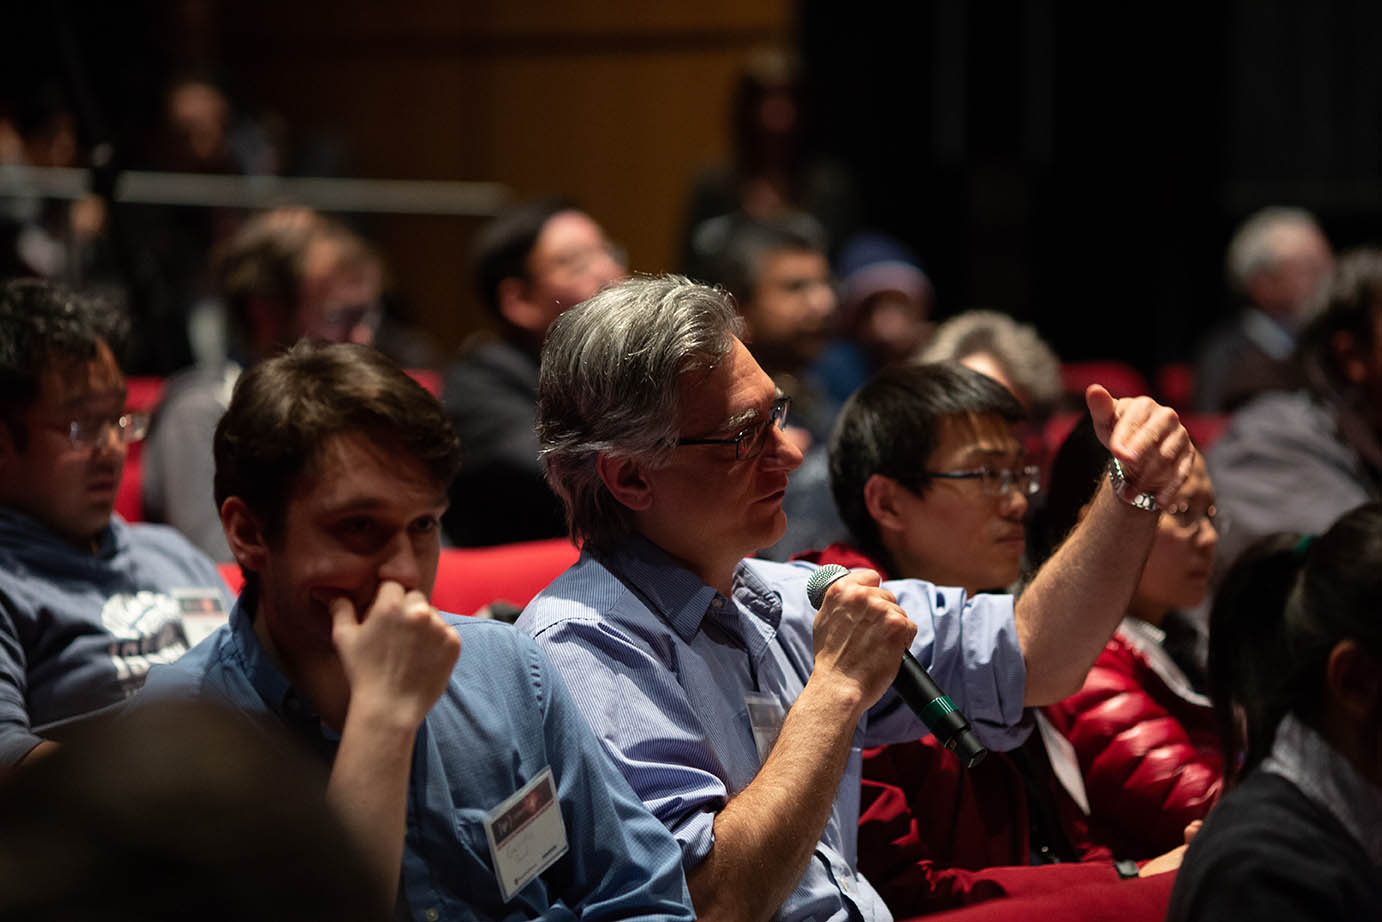 Vigorous participation by the audience resulted in many stimulating questions.